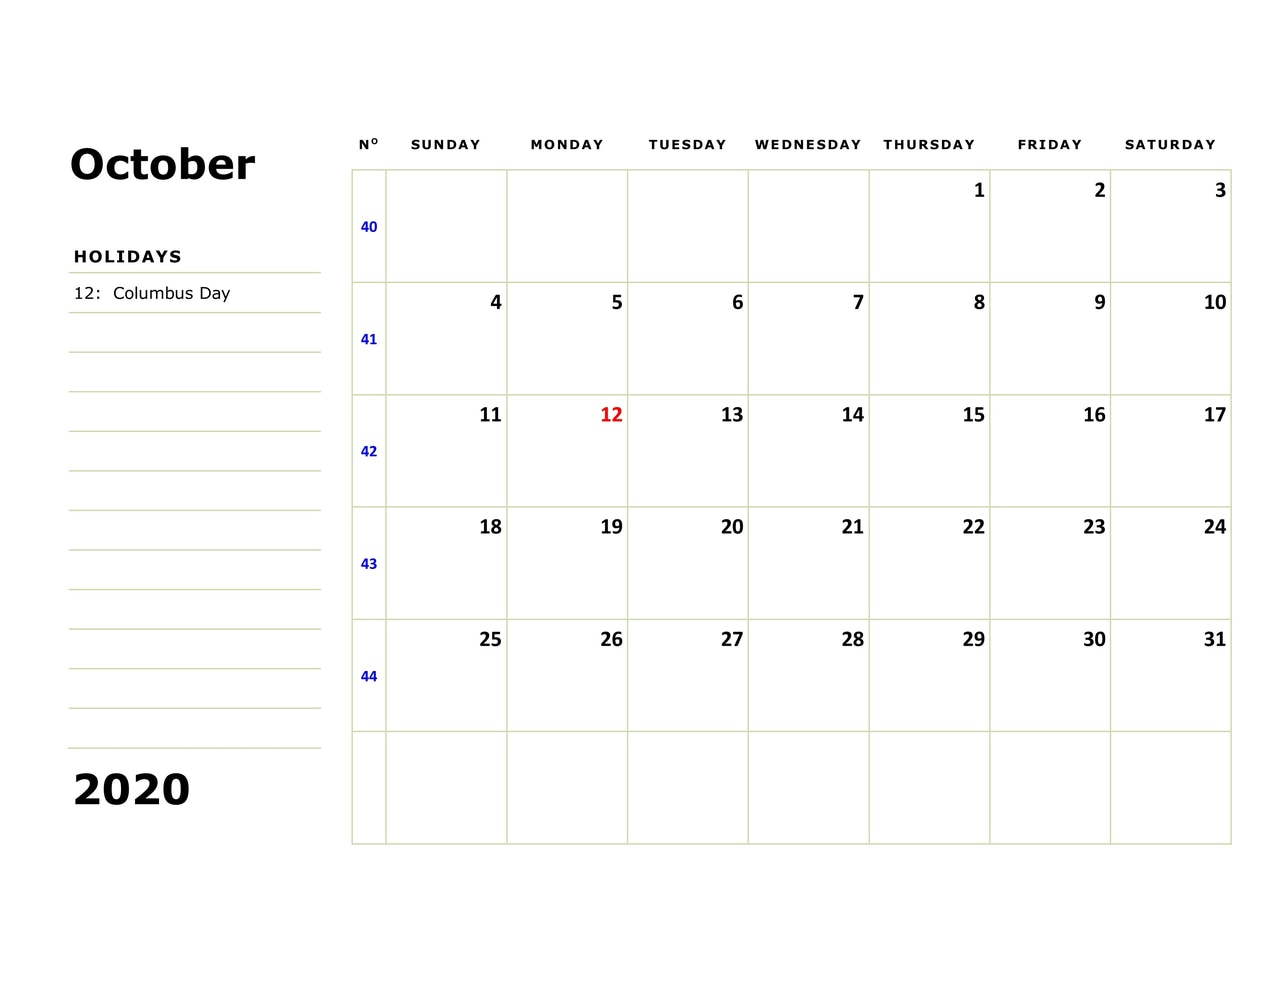 October 2020 Calendar With Festivals and Holidays